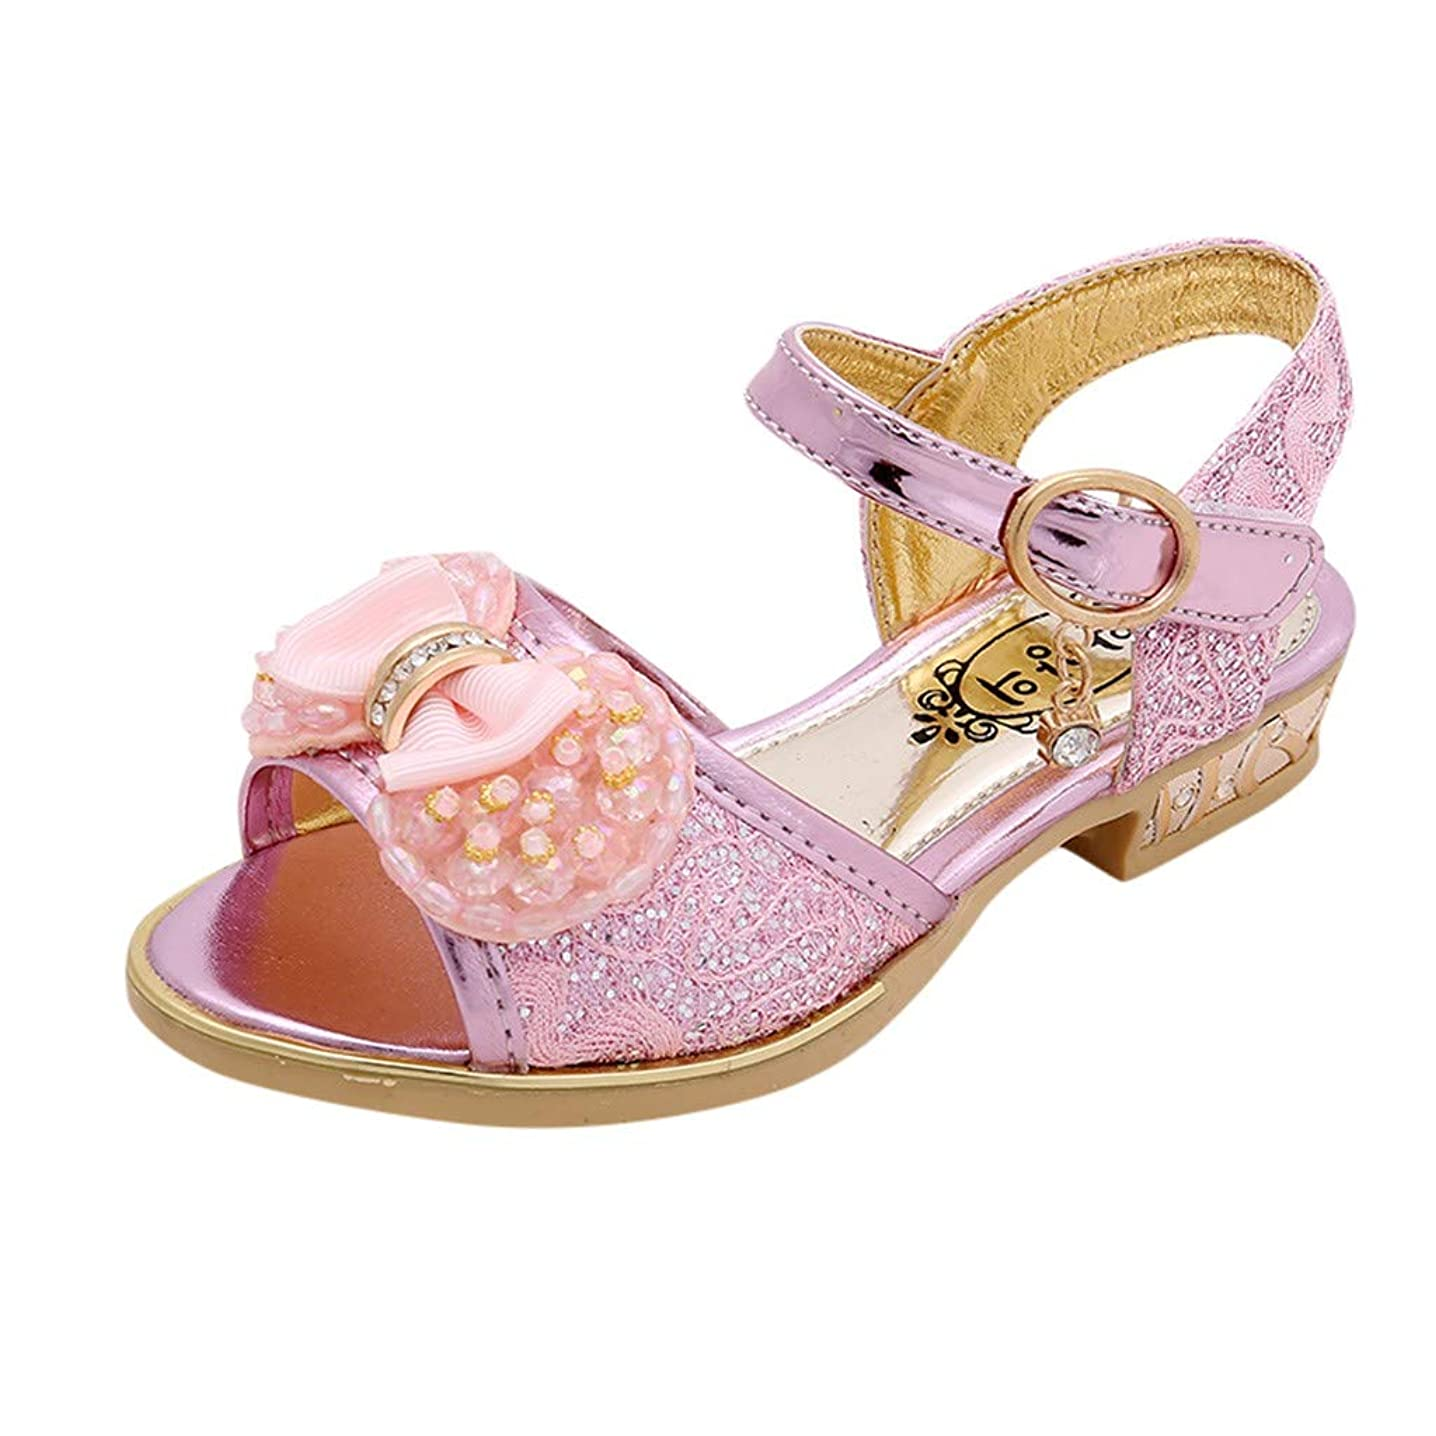 Tantisy ??? Kids Girls Sequin Sandals Princess Crystal High Heels Shoes Mary Jane Wedding Party Dress Shoes